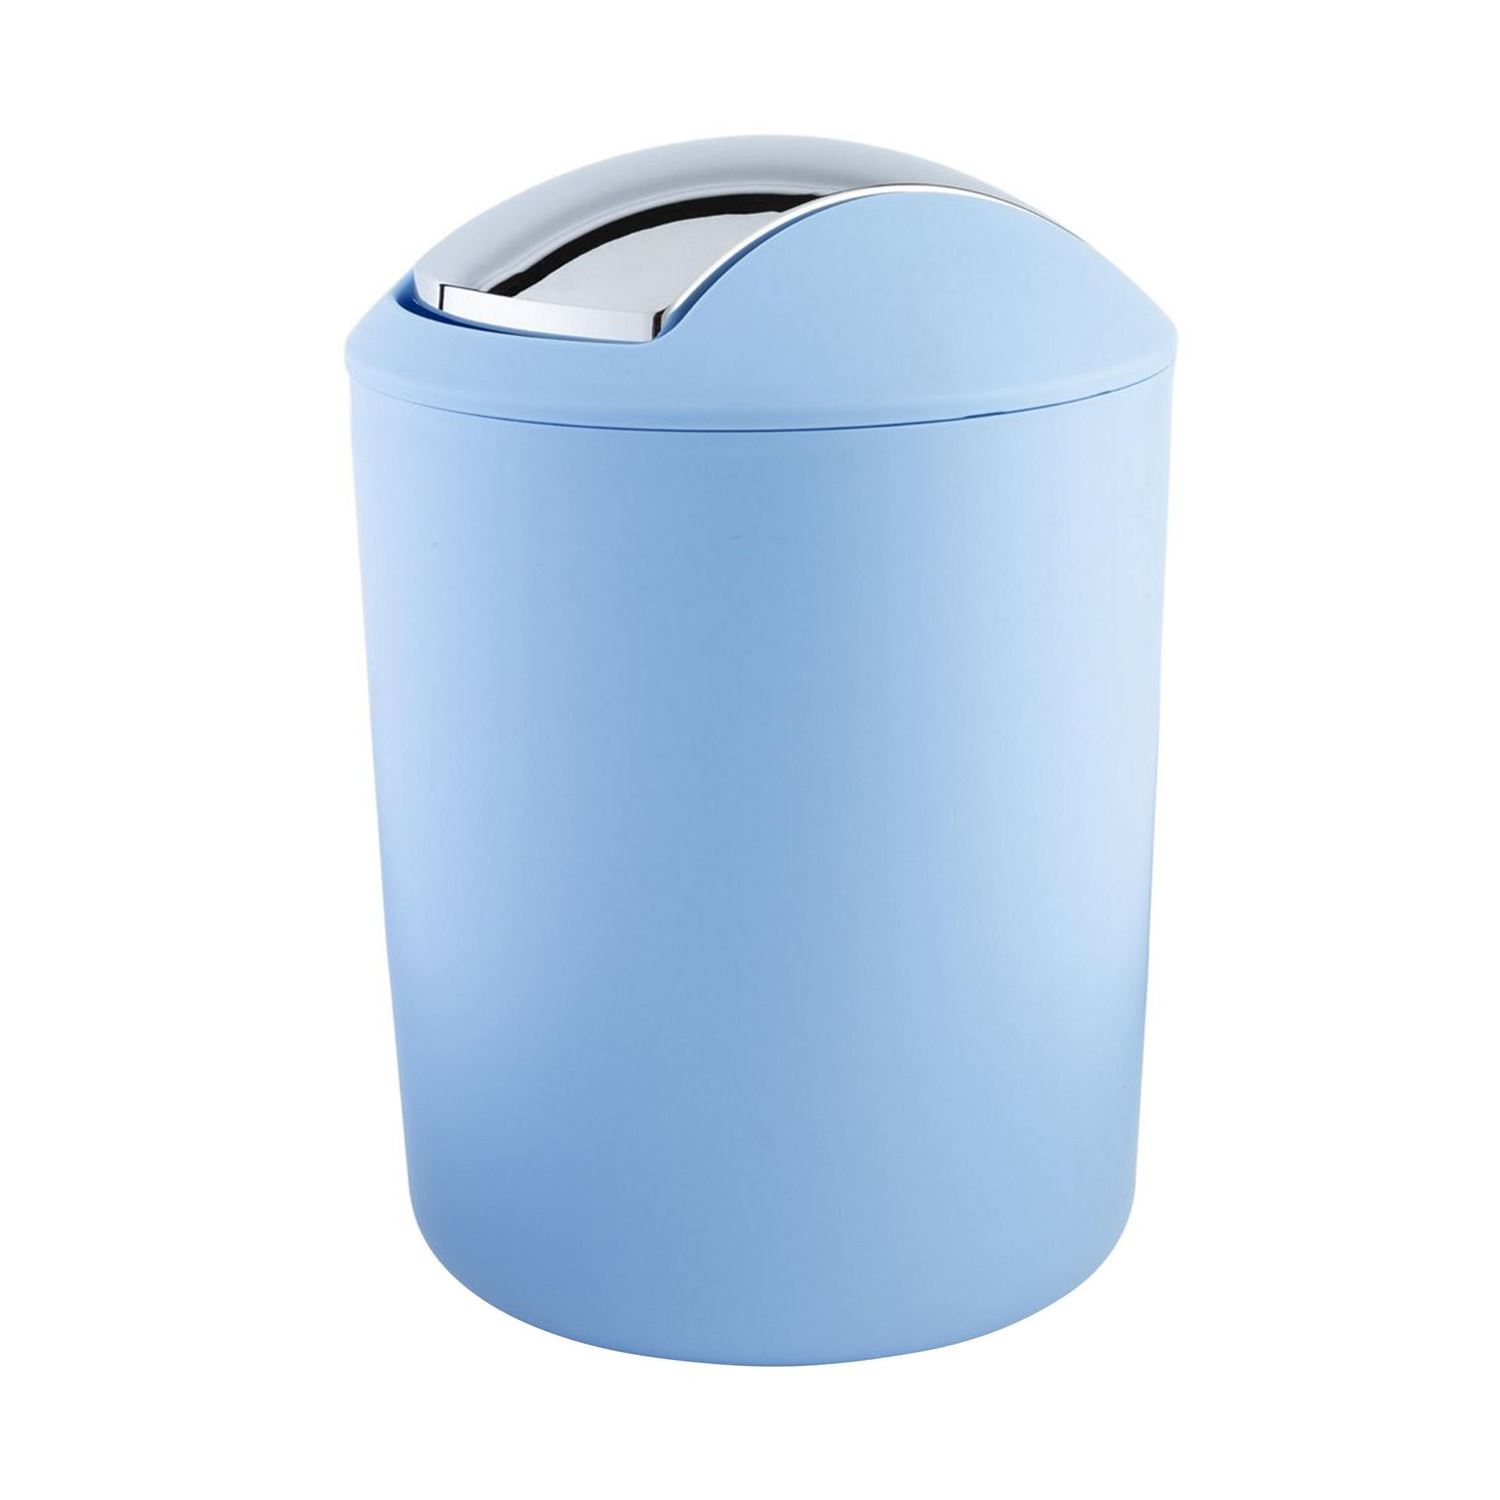 Bathroom accessories plastic toilet brush toilet bin for Toilet accessories